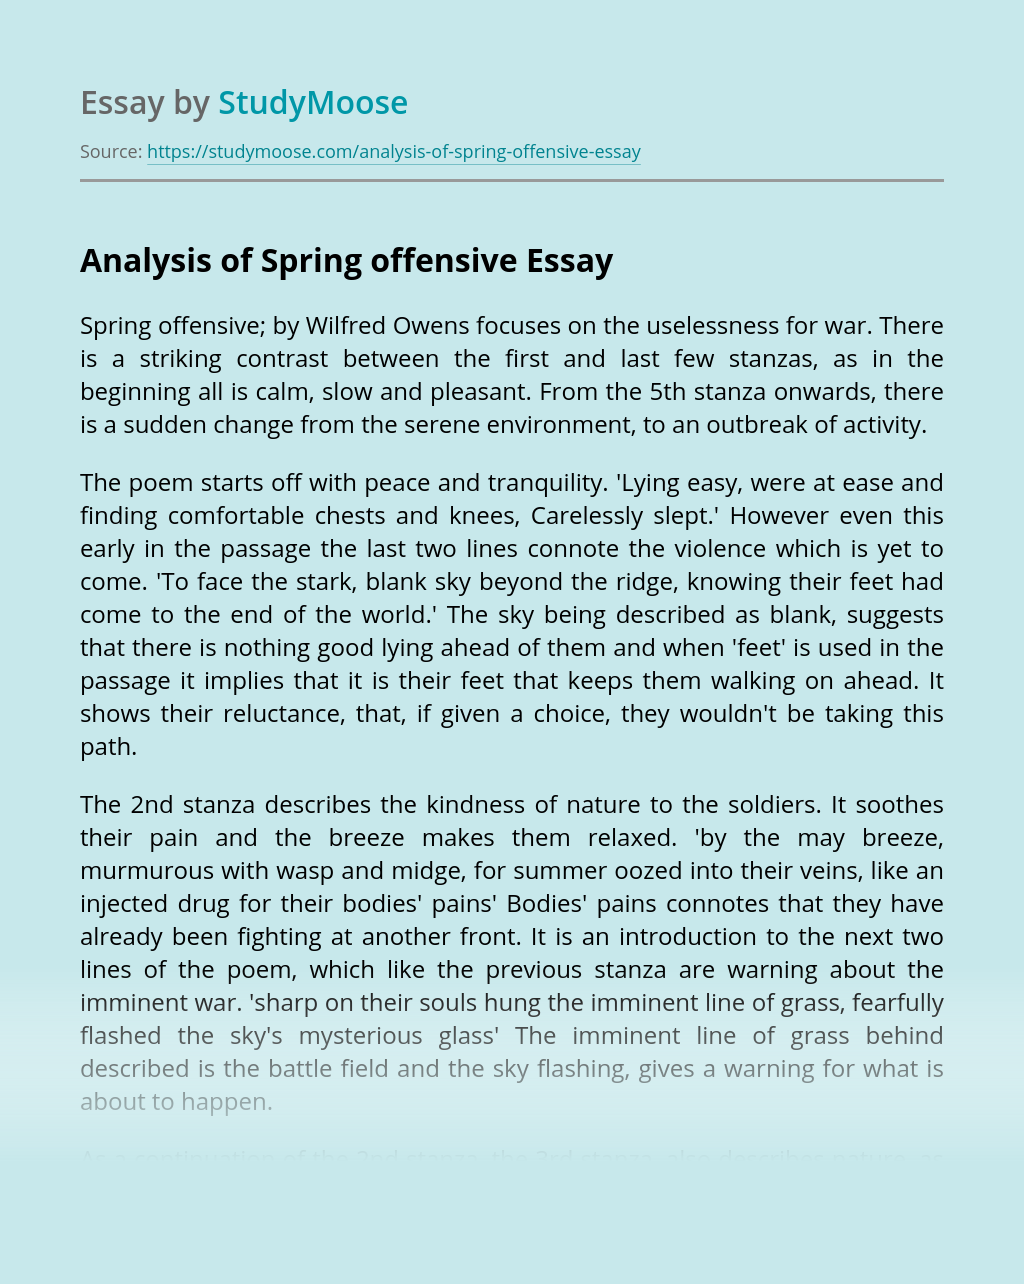 Analysis of Spring offensive